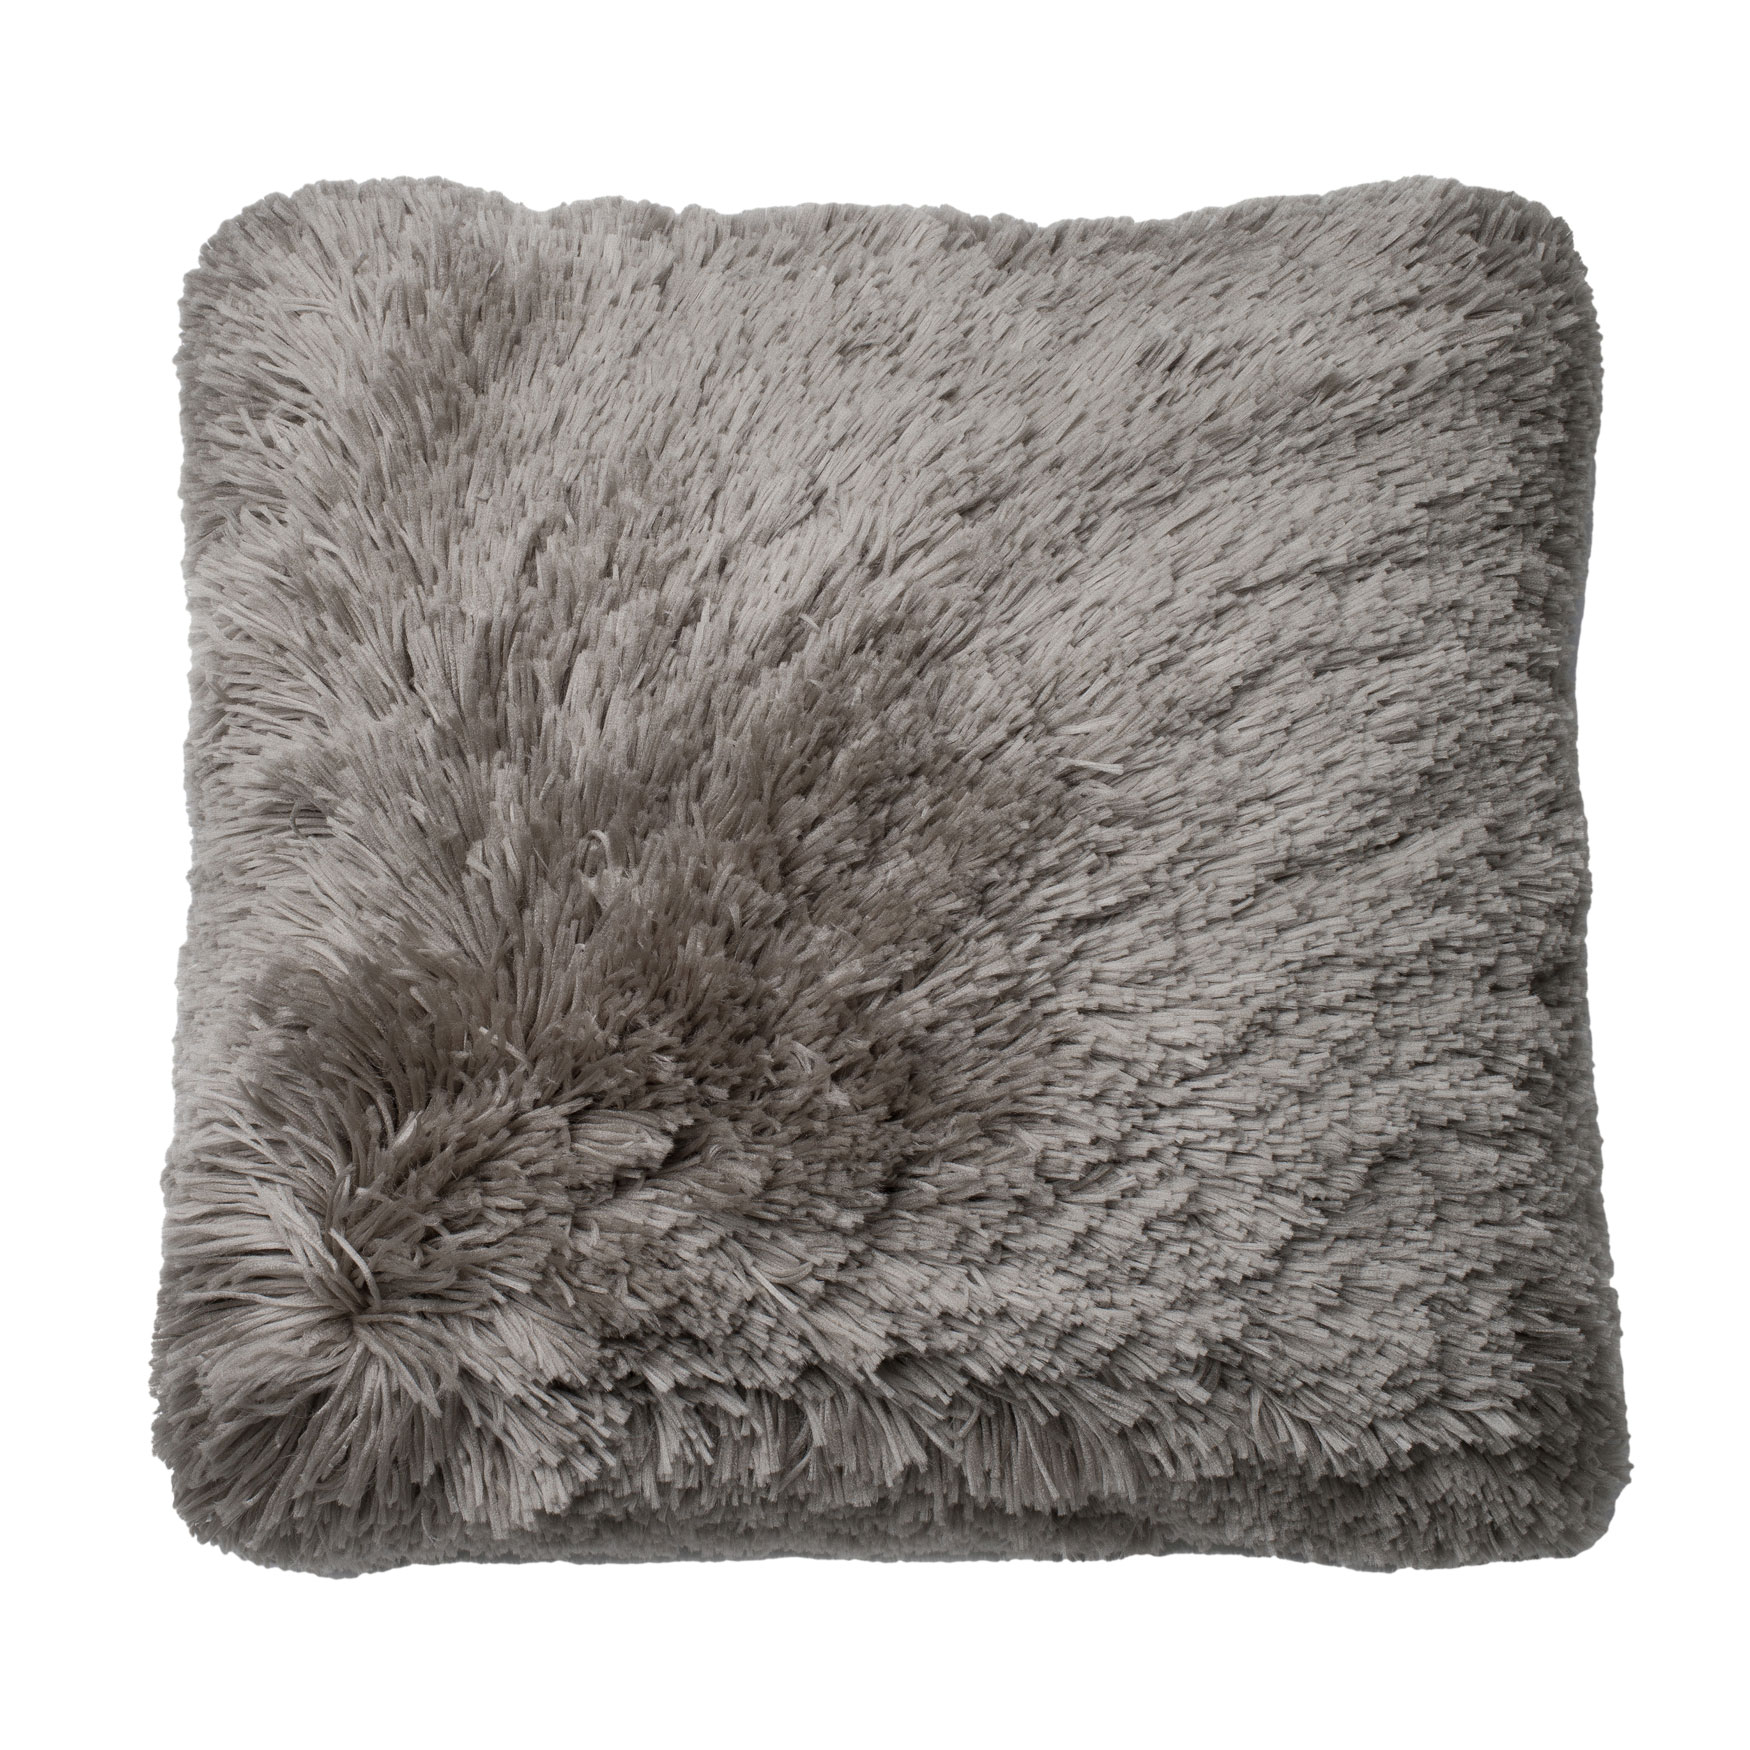 Cozy Plush Decorative Pillow, GREY